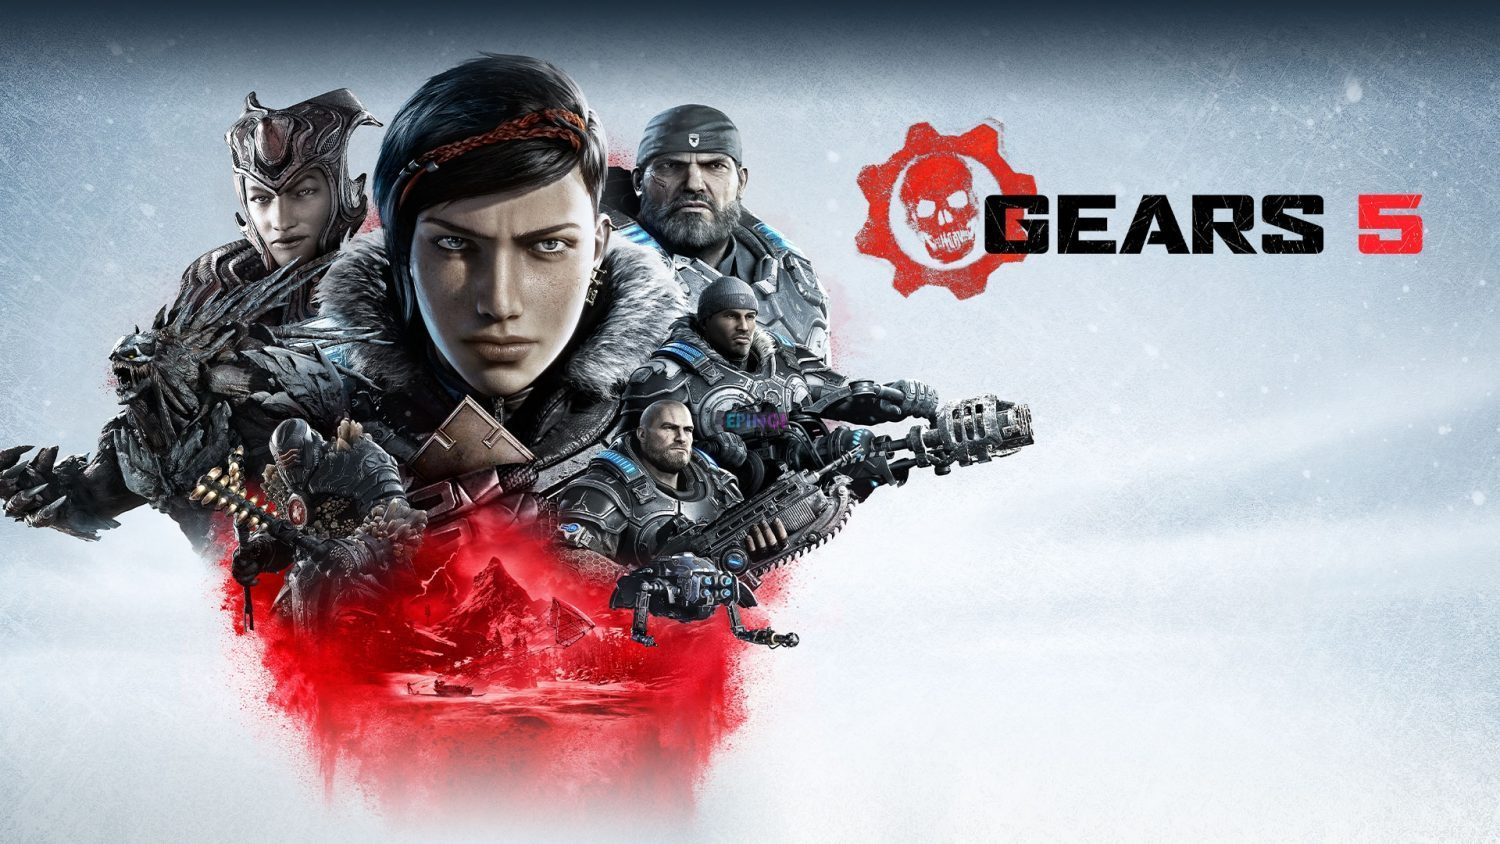 Gears 5 Cracked Online Unlocked Nintendo Switch Version Full Free Game Download